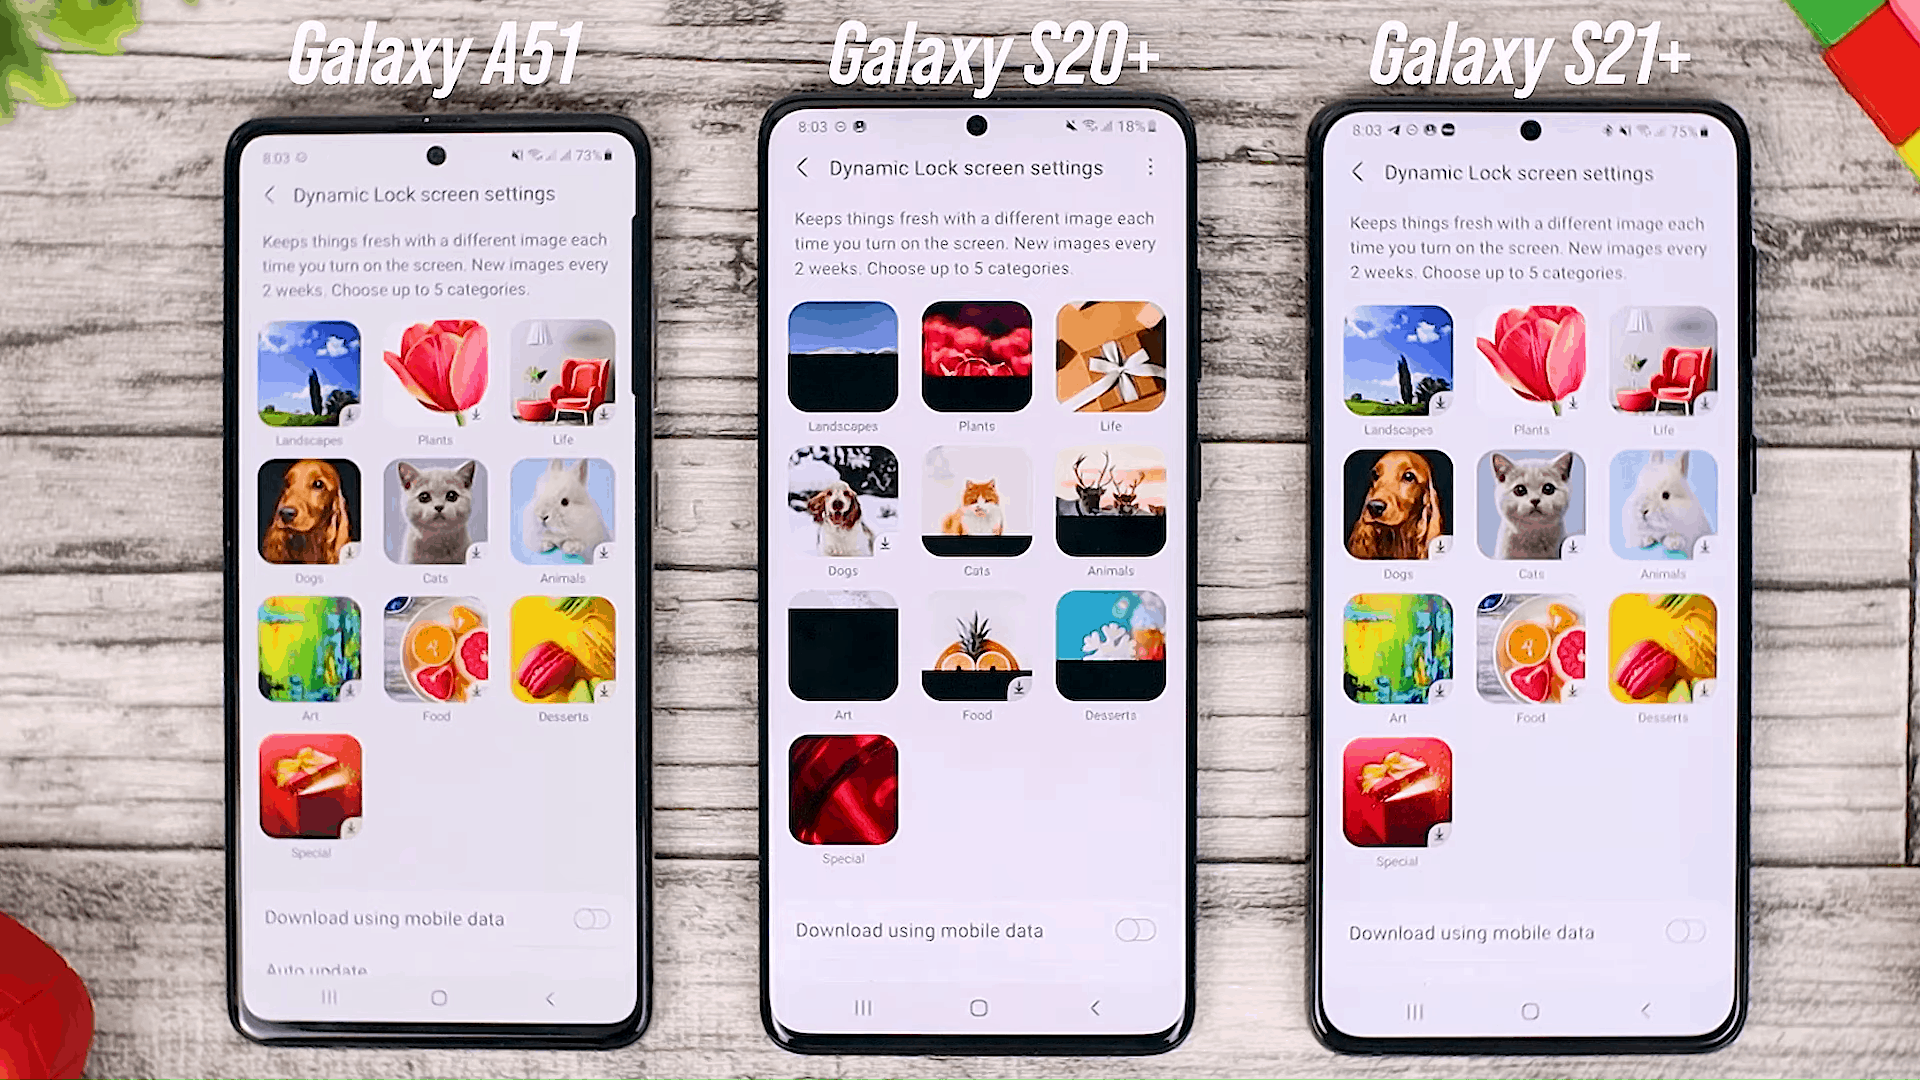 Dynamic Wallpaper Category - One UI 3.0 features of Samsung Galaxy A51 and its comparison with the Galaxy S20+ and One UI 3.1 on the Galaxy S21+